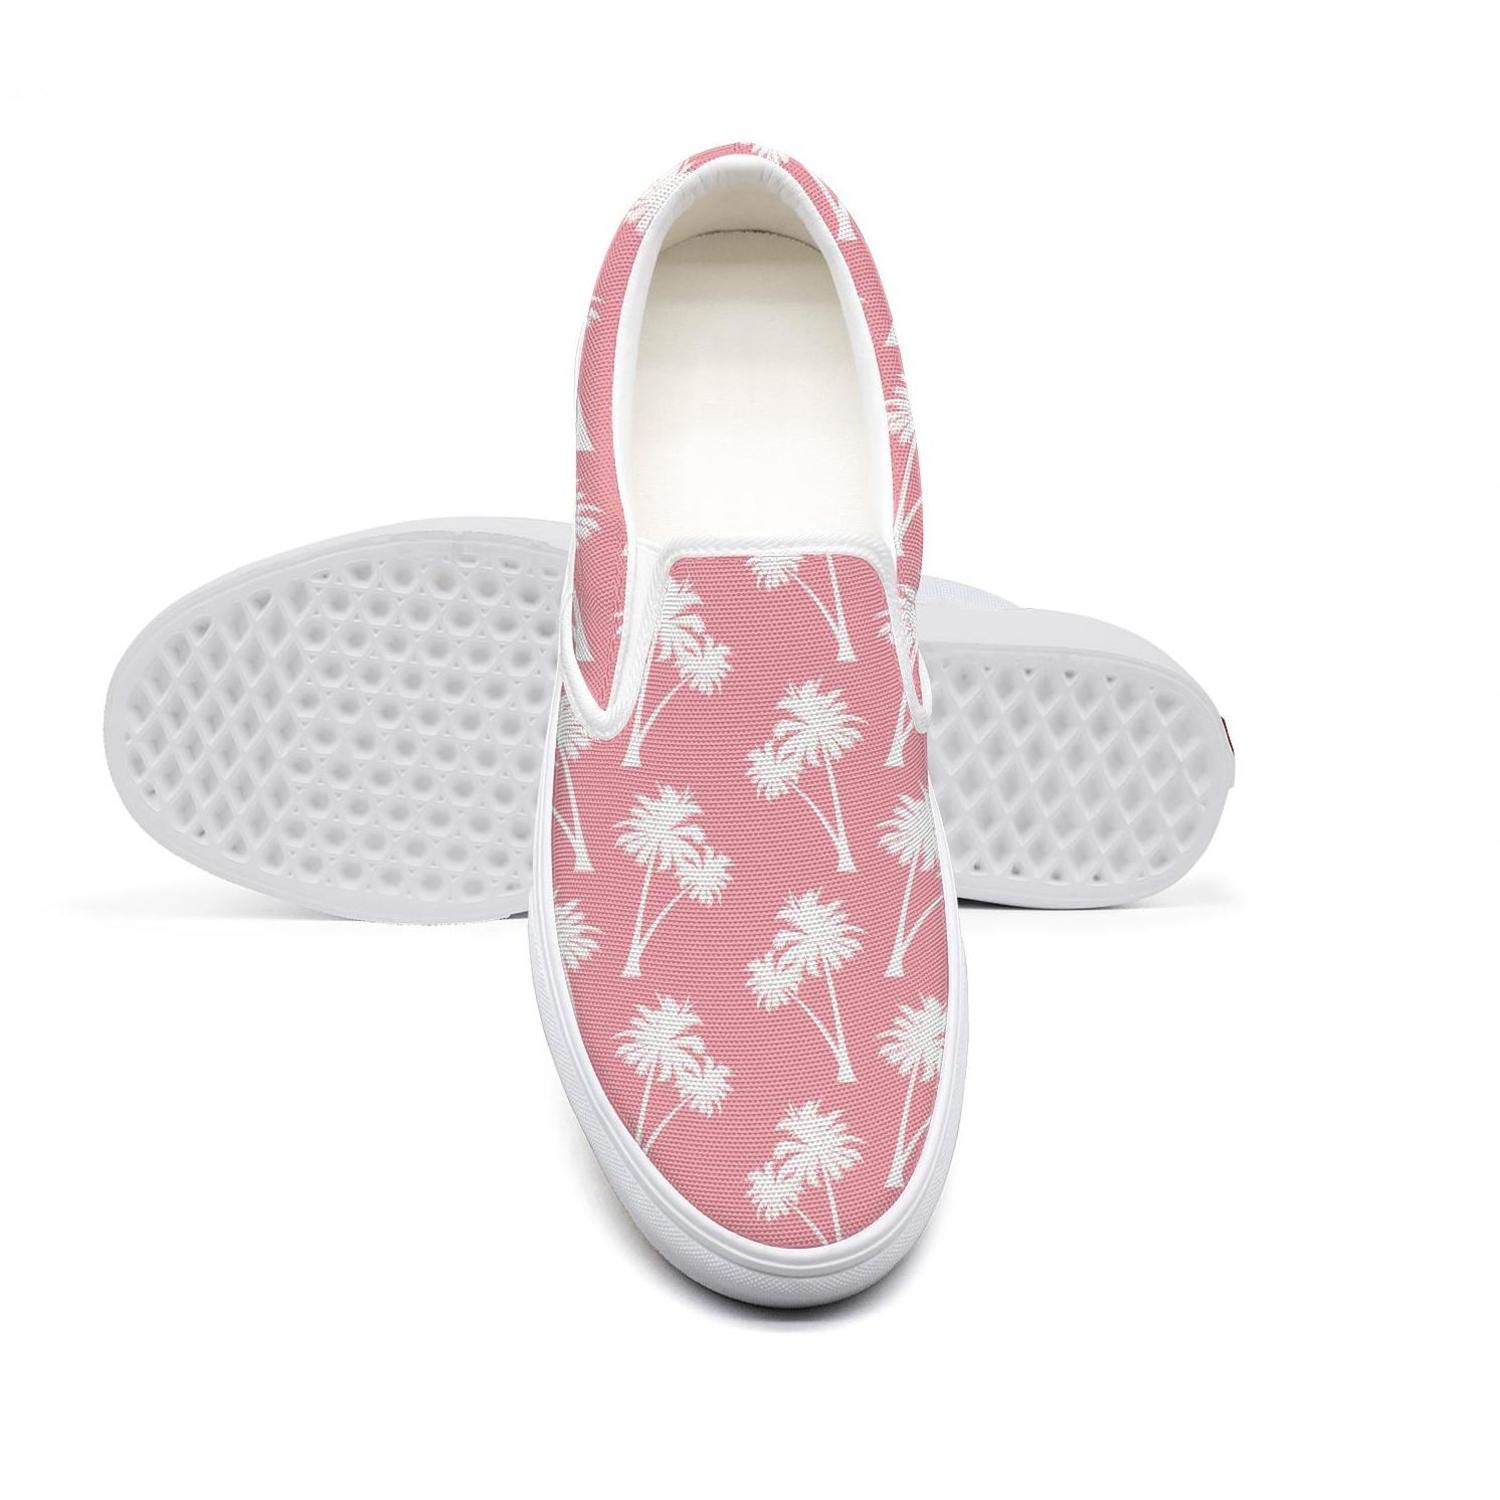 RivasPsm Womens Slip-on Loafer Double Coconut Palm Tree Pink Casual Sneaker Flat Walking Shoes Round Toe